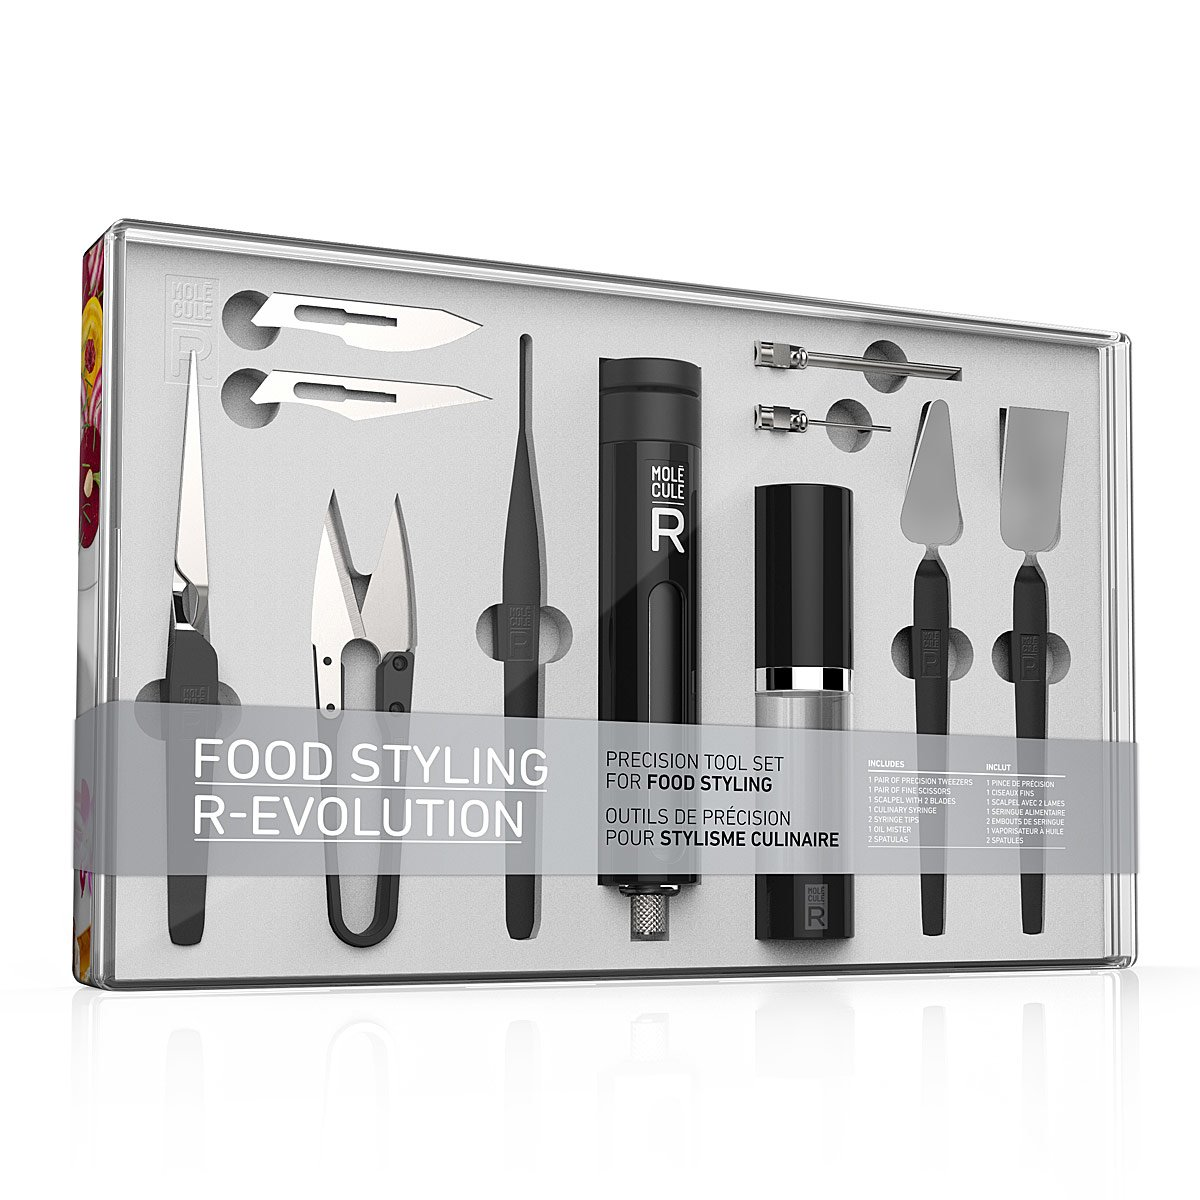 food-styling-precision-tool-set